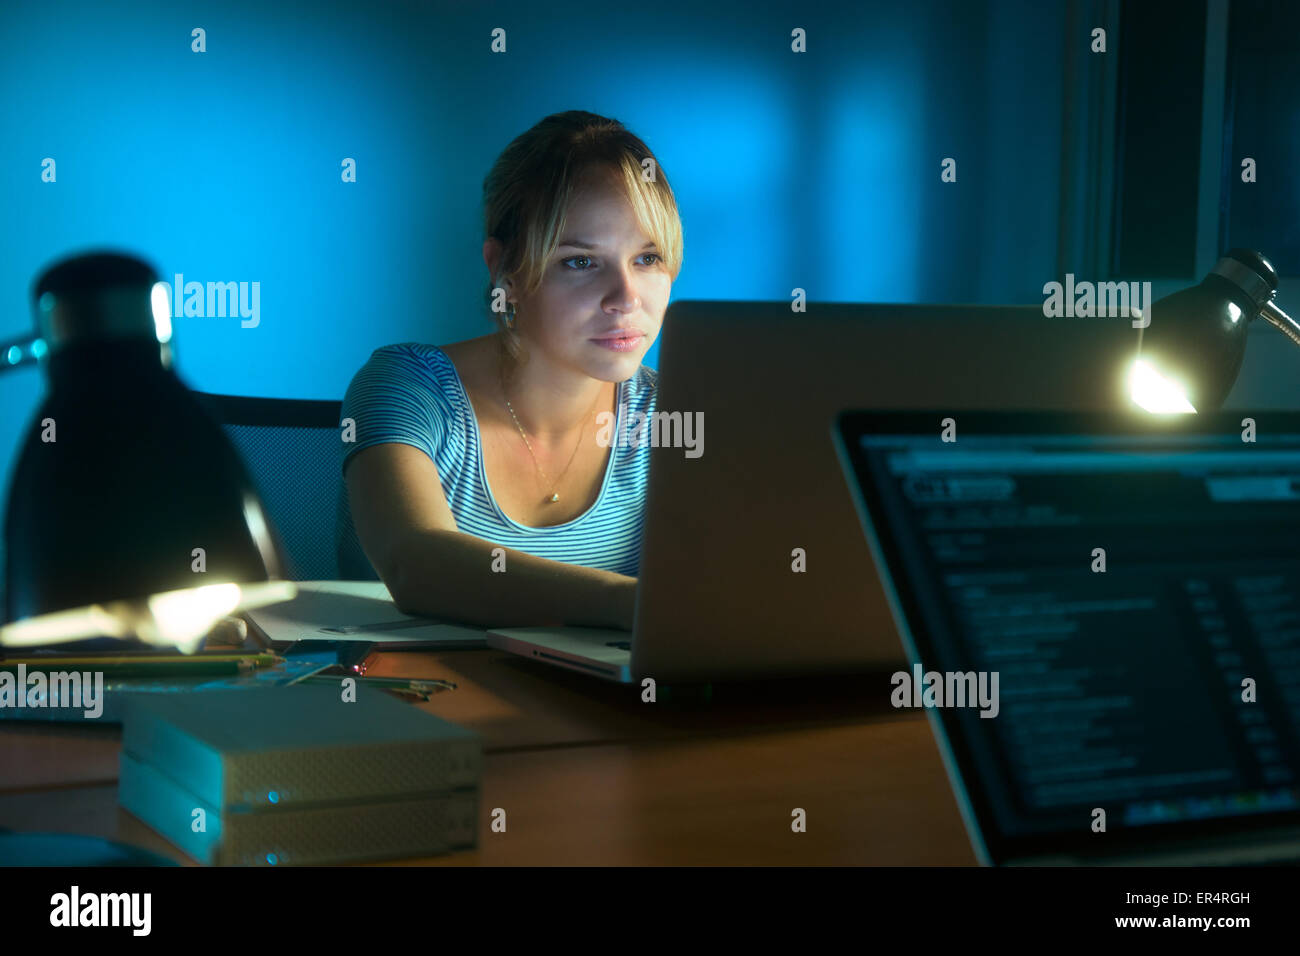 Beautiful woman working late at night in office, surfing the web and writing post on social network with laptop - Stock Image